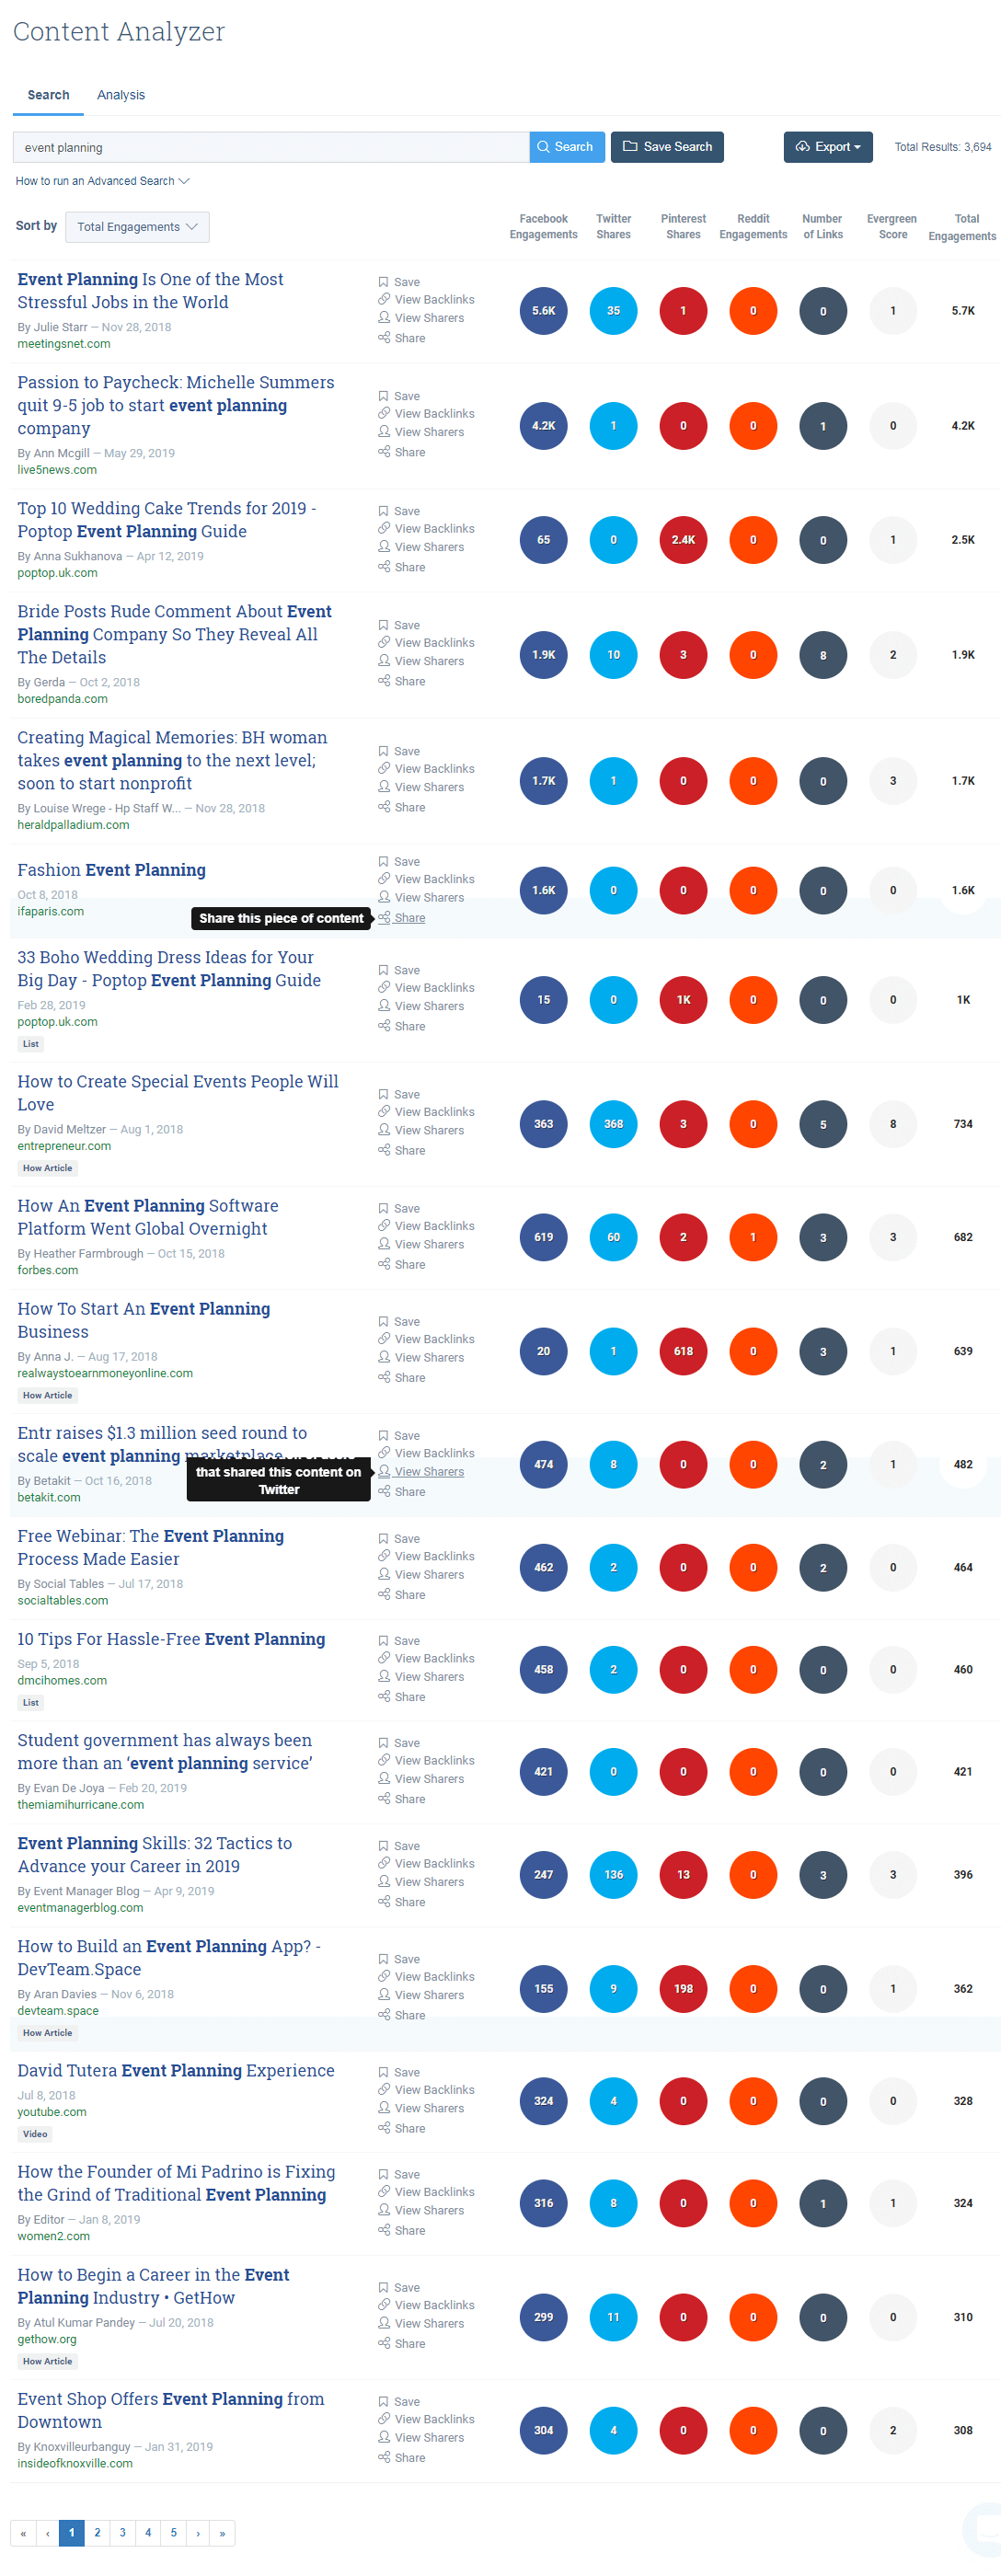 """Buzzsumo's Content Analyzer results for the keyword """"event planning"""""""